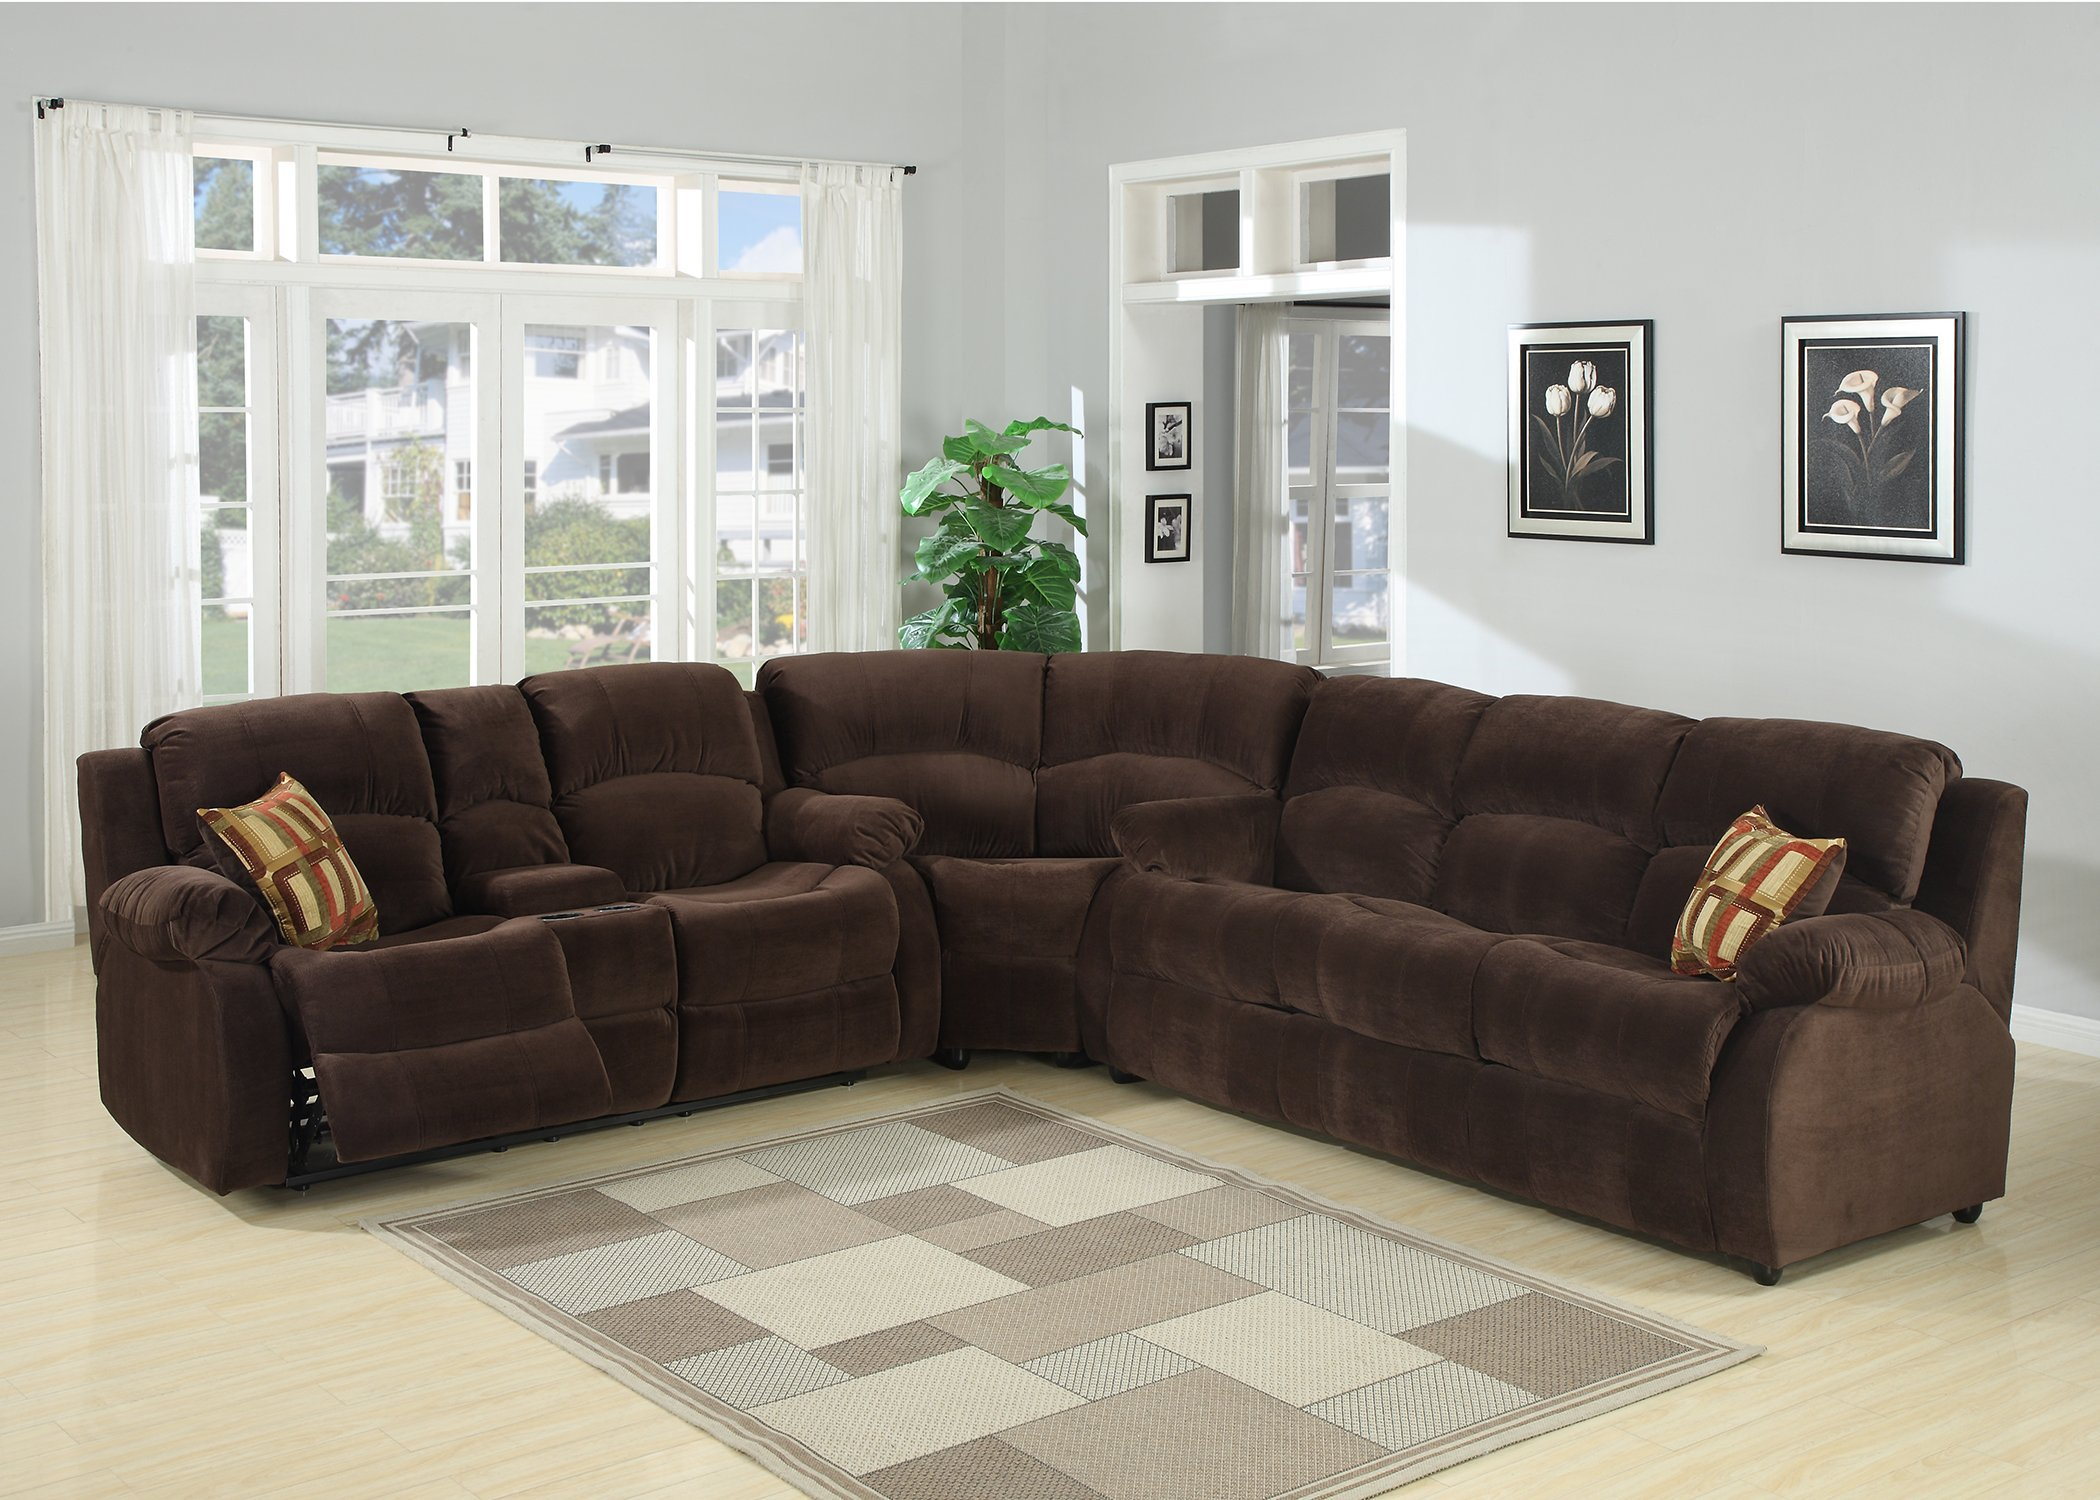 sectional sofa with recliners amazon com rh amazon com sectional sofas with recliners ashley sectional sofas with recliners lazy boy